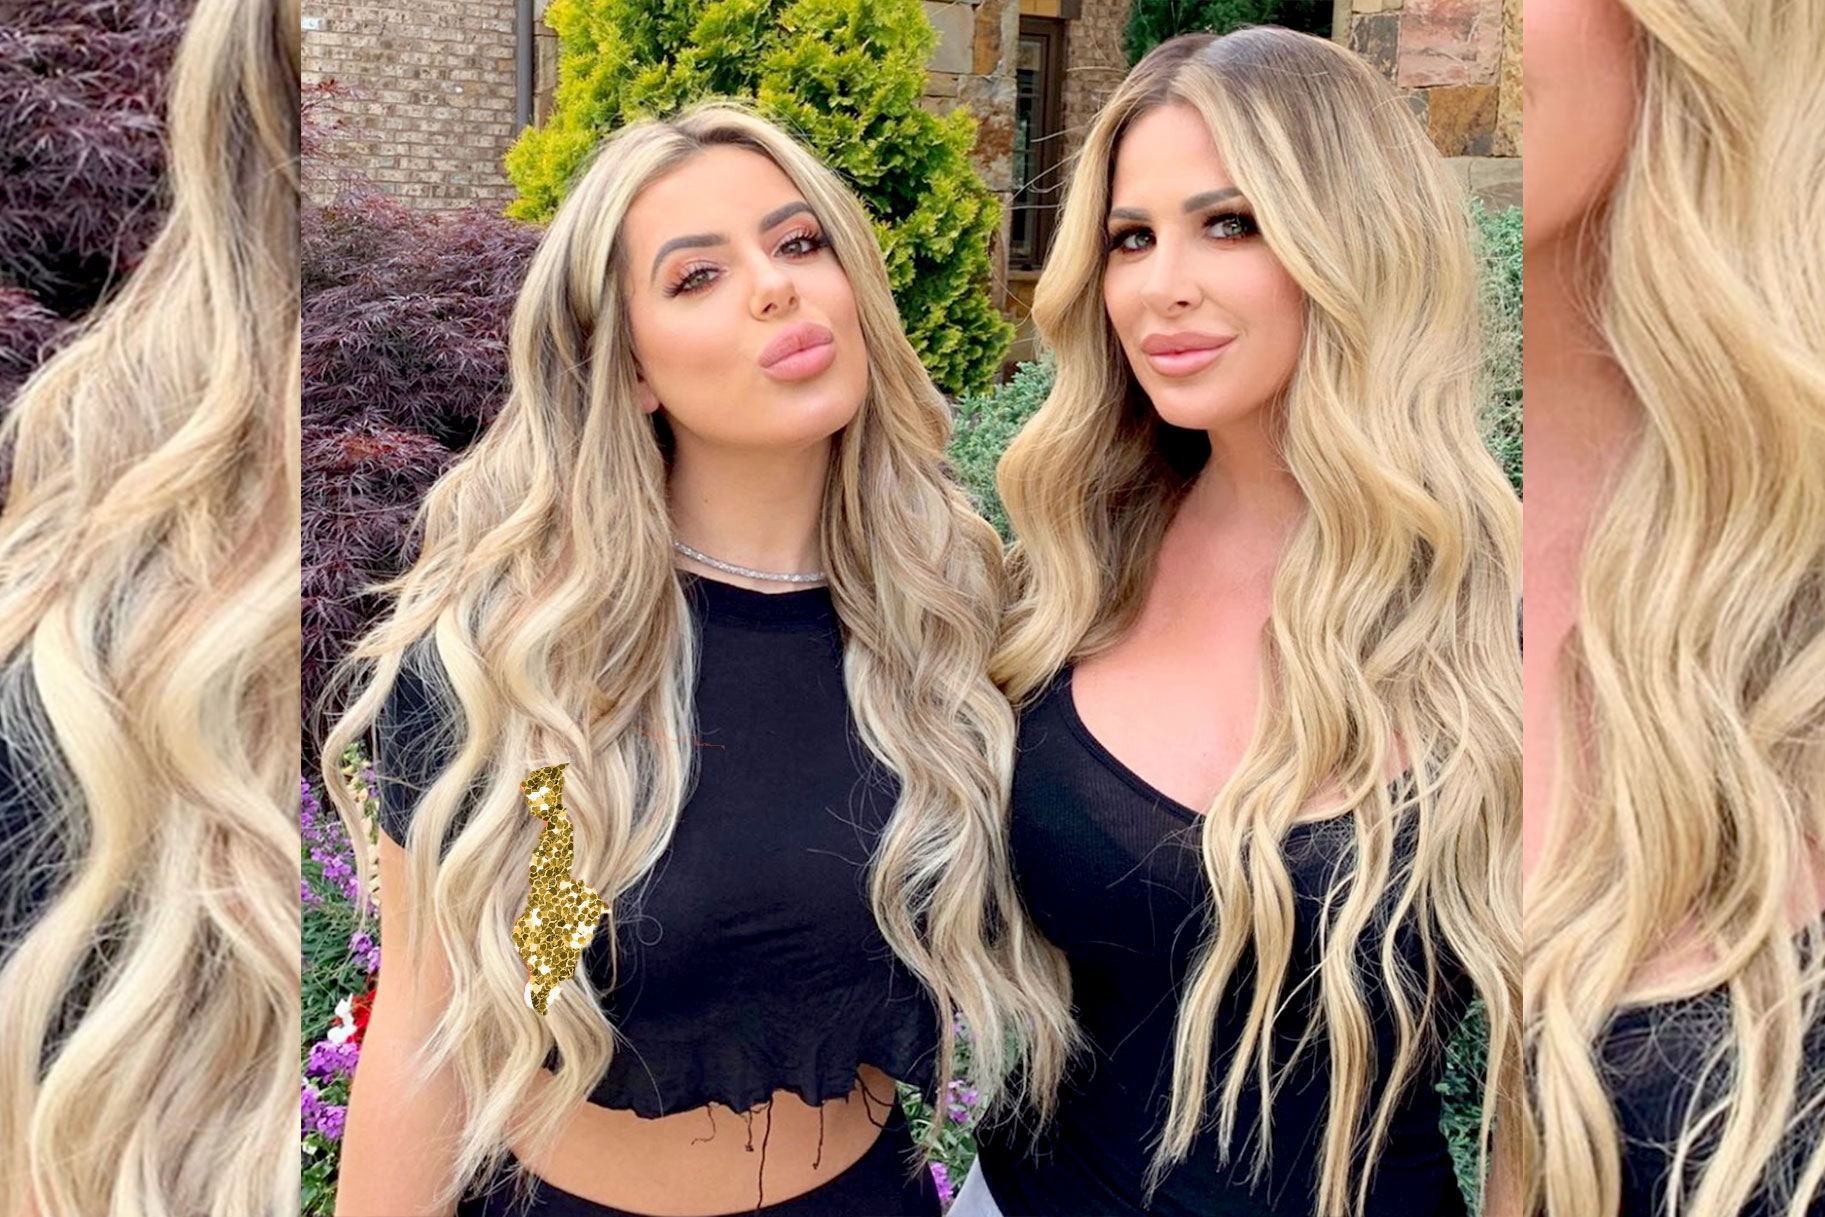 Kim and Brielle Biermann